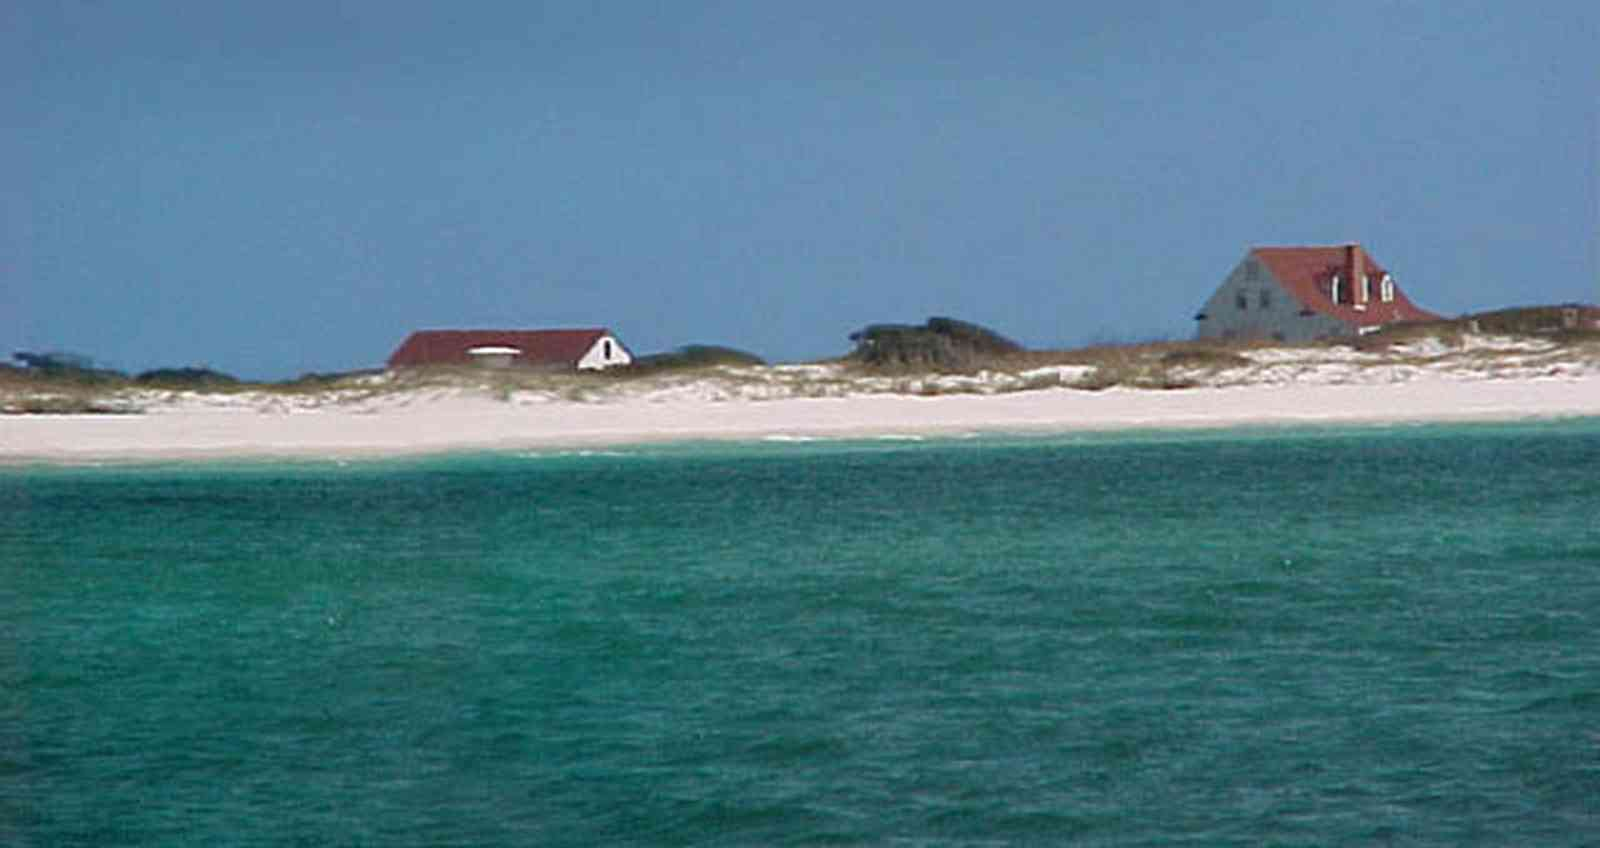 Gulf-Islands-National-Seashore:-Fort-Pickens:-Ranger-Station_30.jpg:  dunes, seashore, gulf of mexico, sea oats, emerald water, archaeological underwater wreck, scuba diving